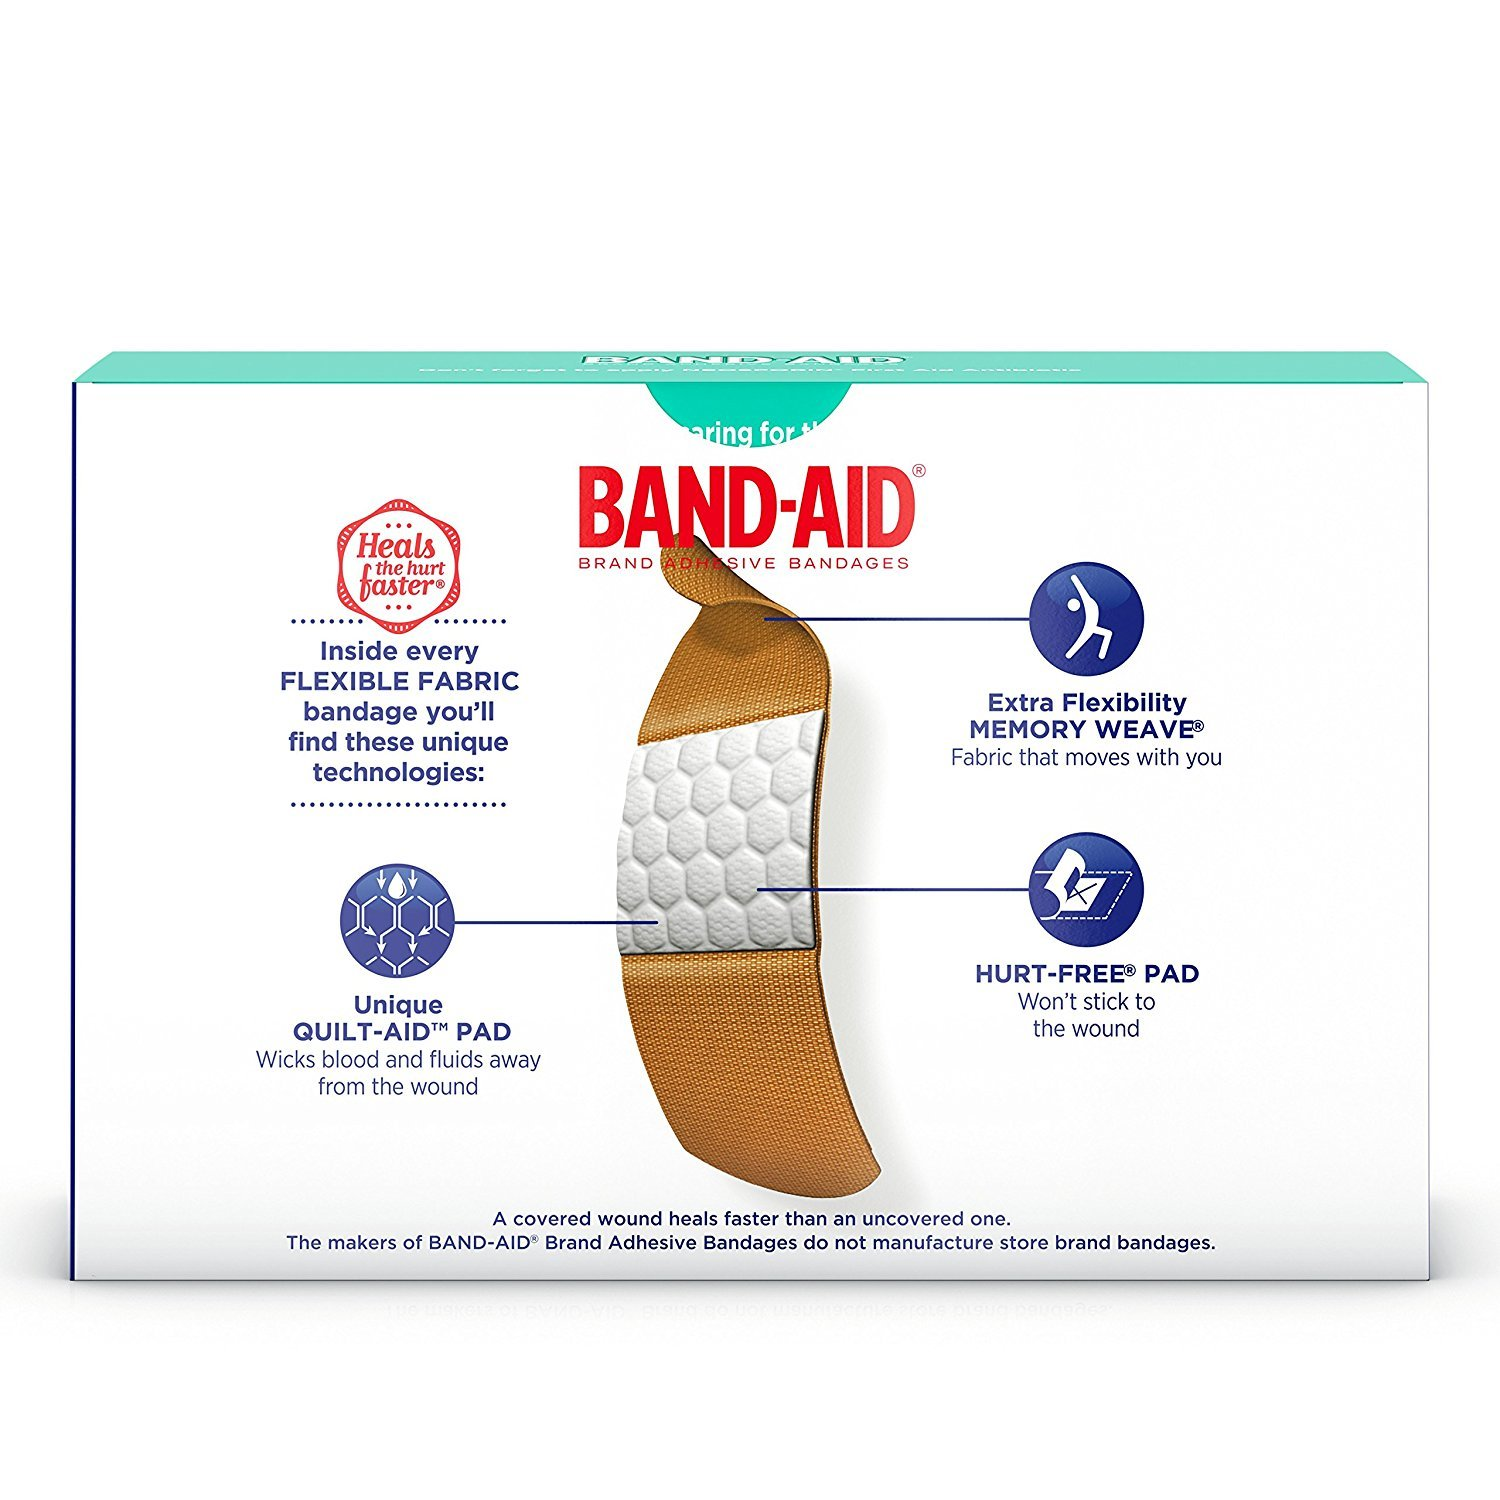 Johnsons Band-aid Flex Fabric Travel Pack - 8 Count Ea. - 12 Packs by Band-Aid (Image #7)